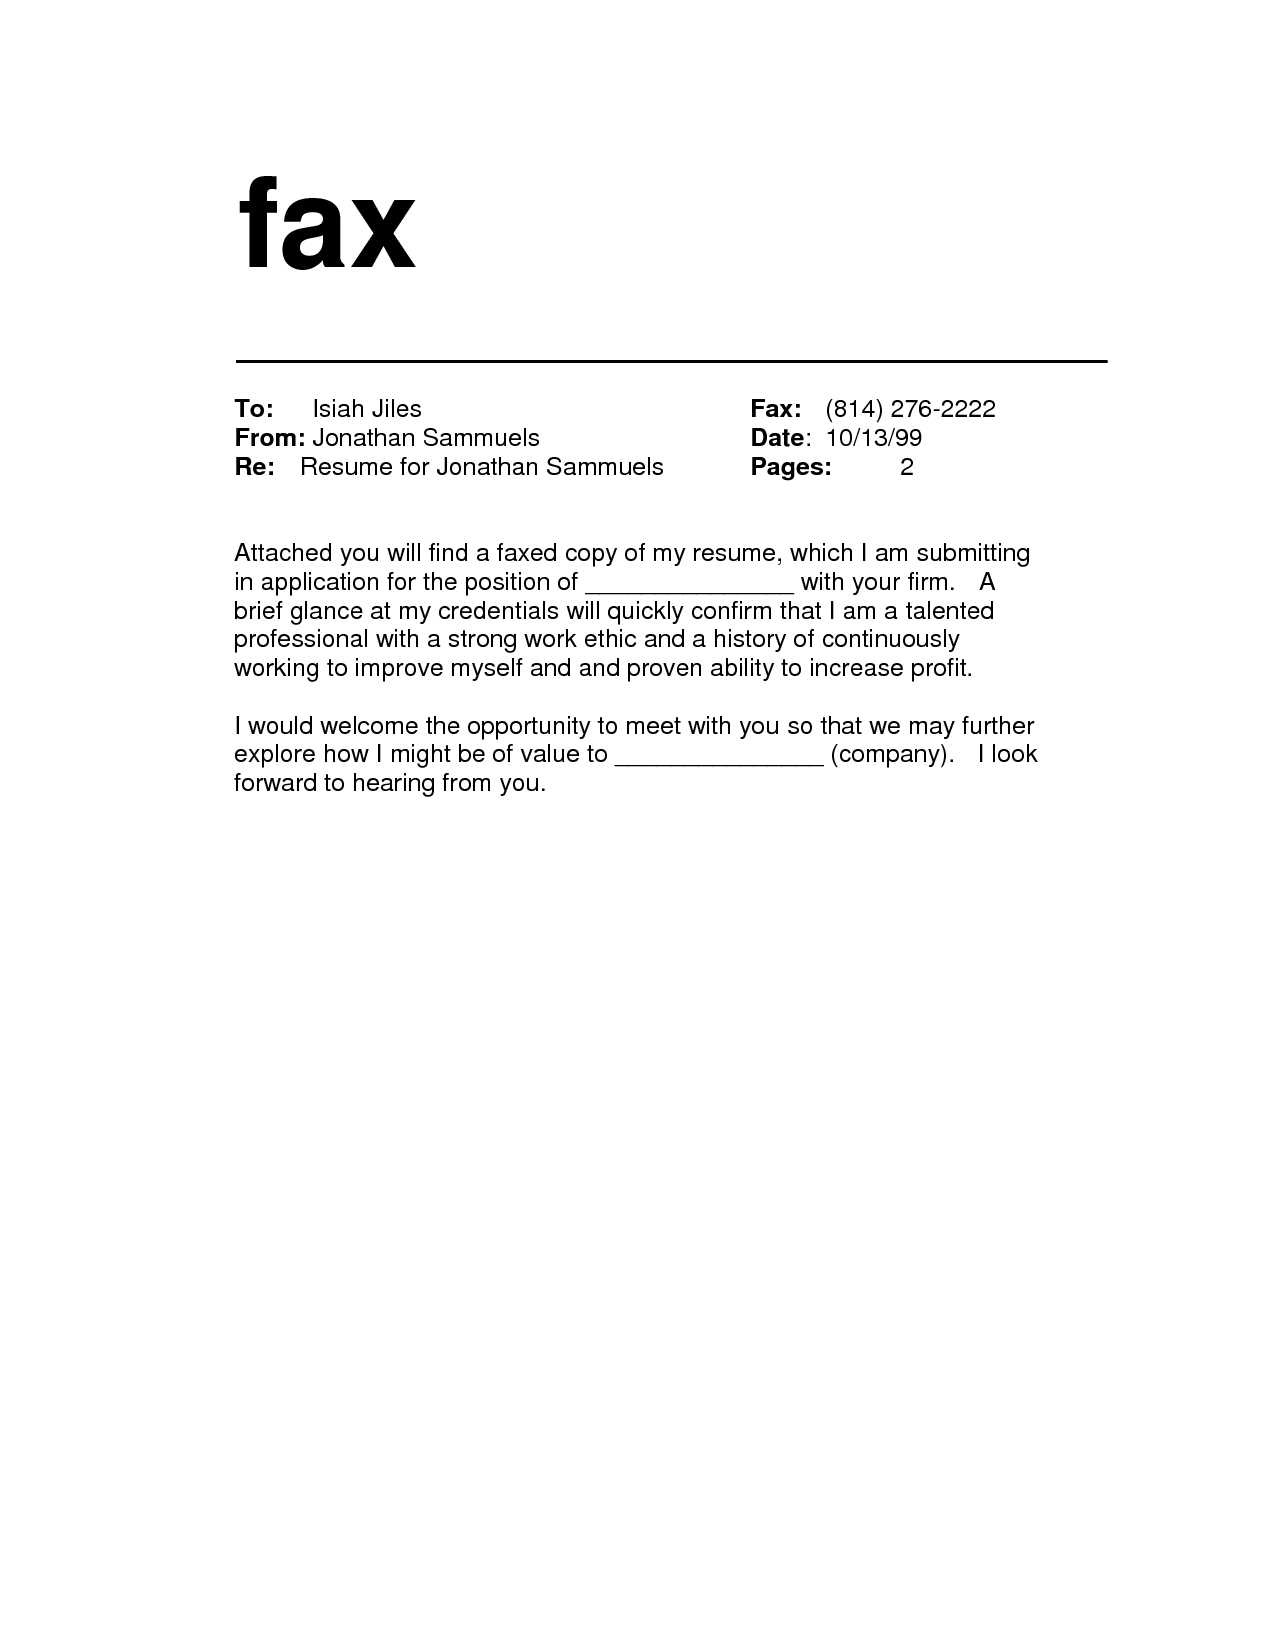 10 Fax Cover Sheet Template In Word Doc Professional Basic